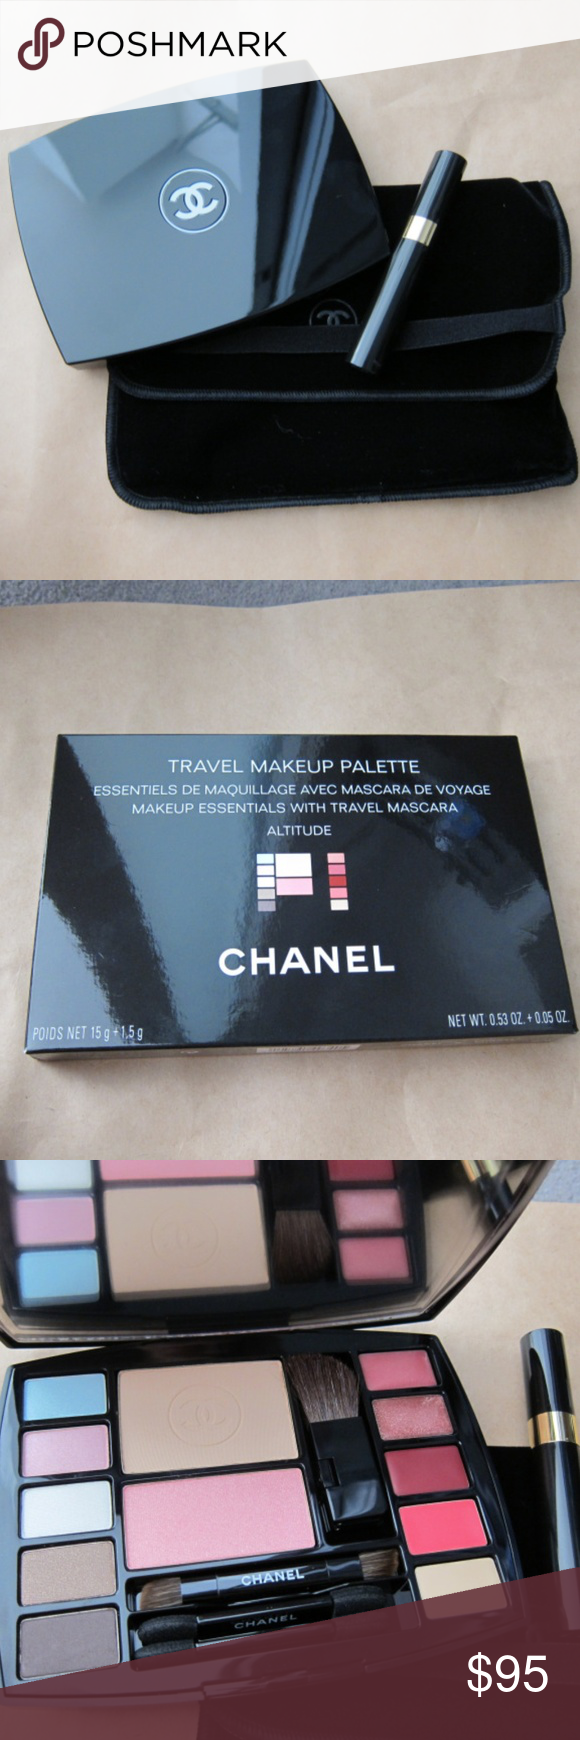 NEW* CHANEL Travel Makeup Palette 'Altitude' NWT Travel